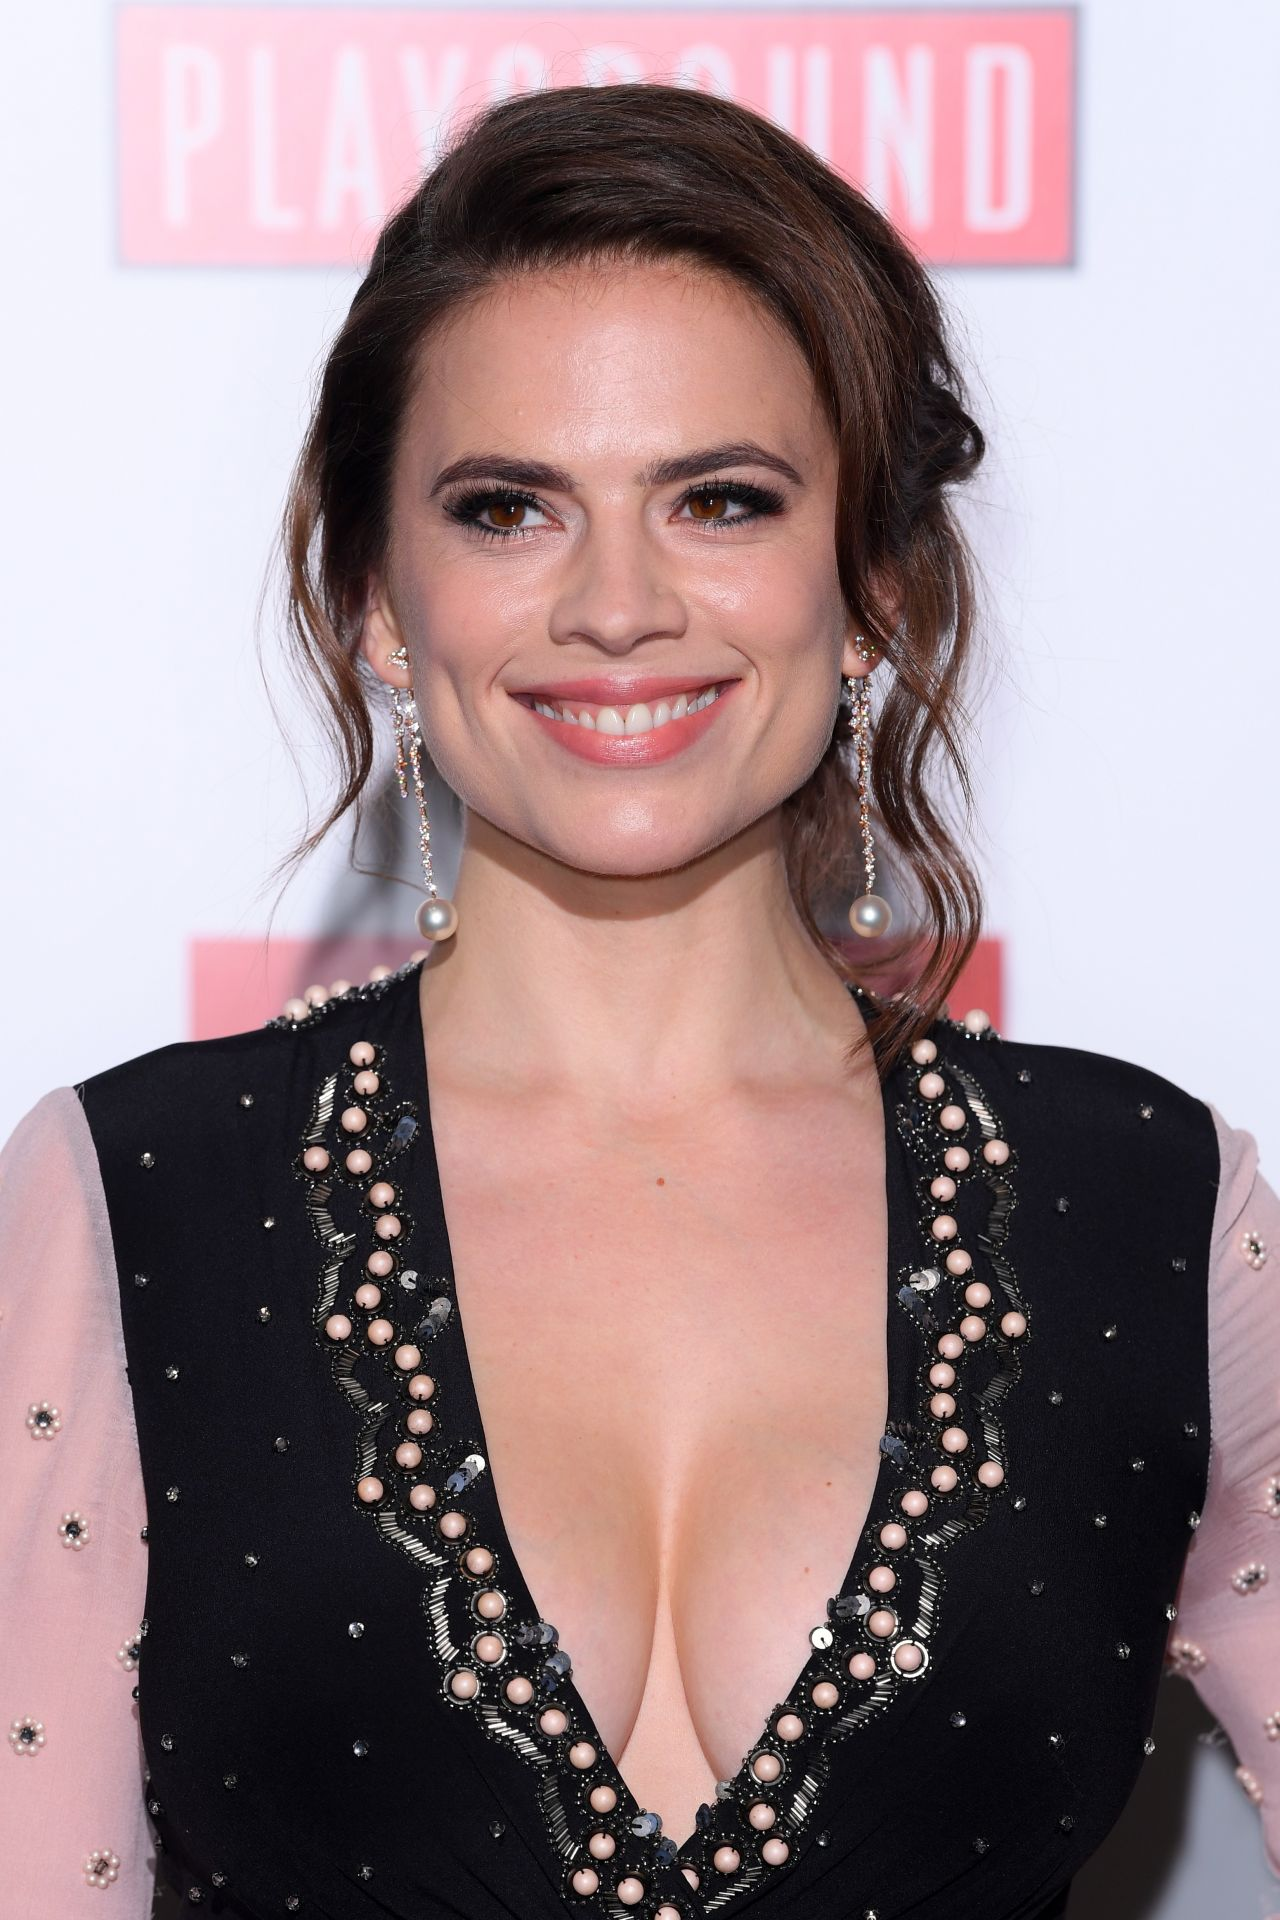 Hayley Atwell nudes (77 images) Cleavage, Snapchat, swimsuit